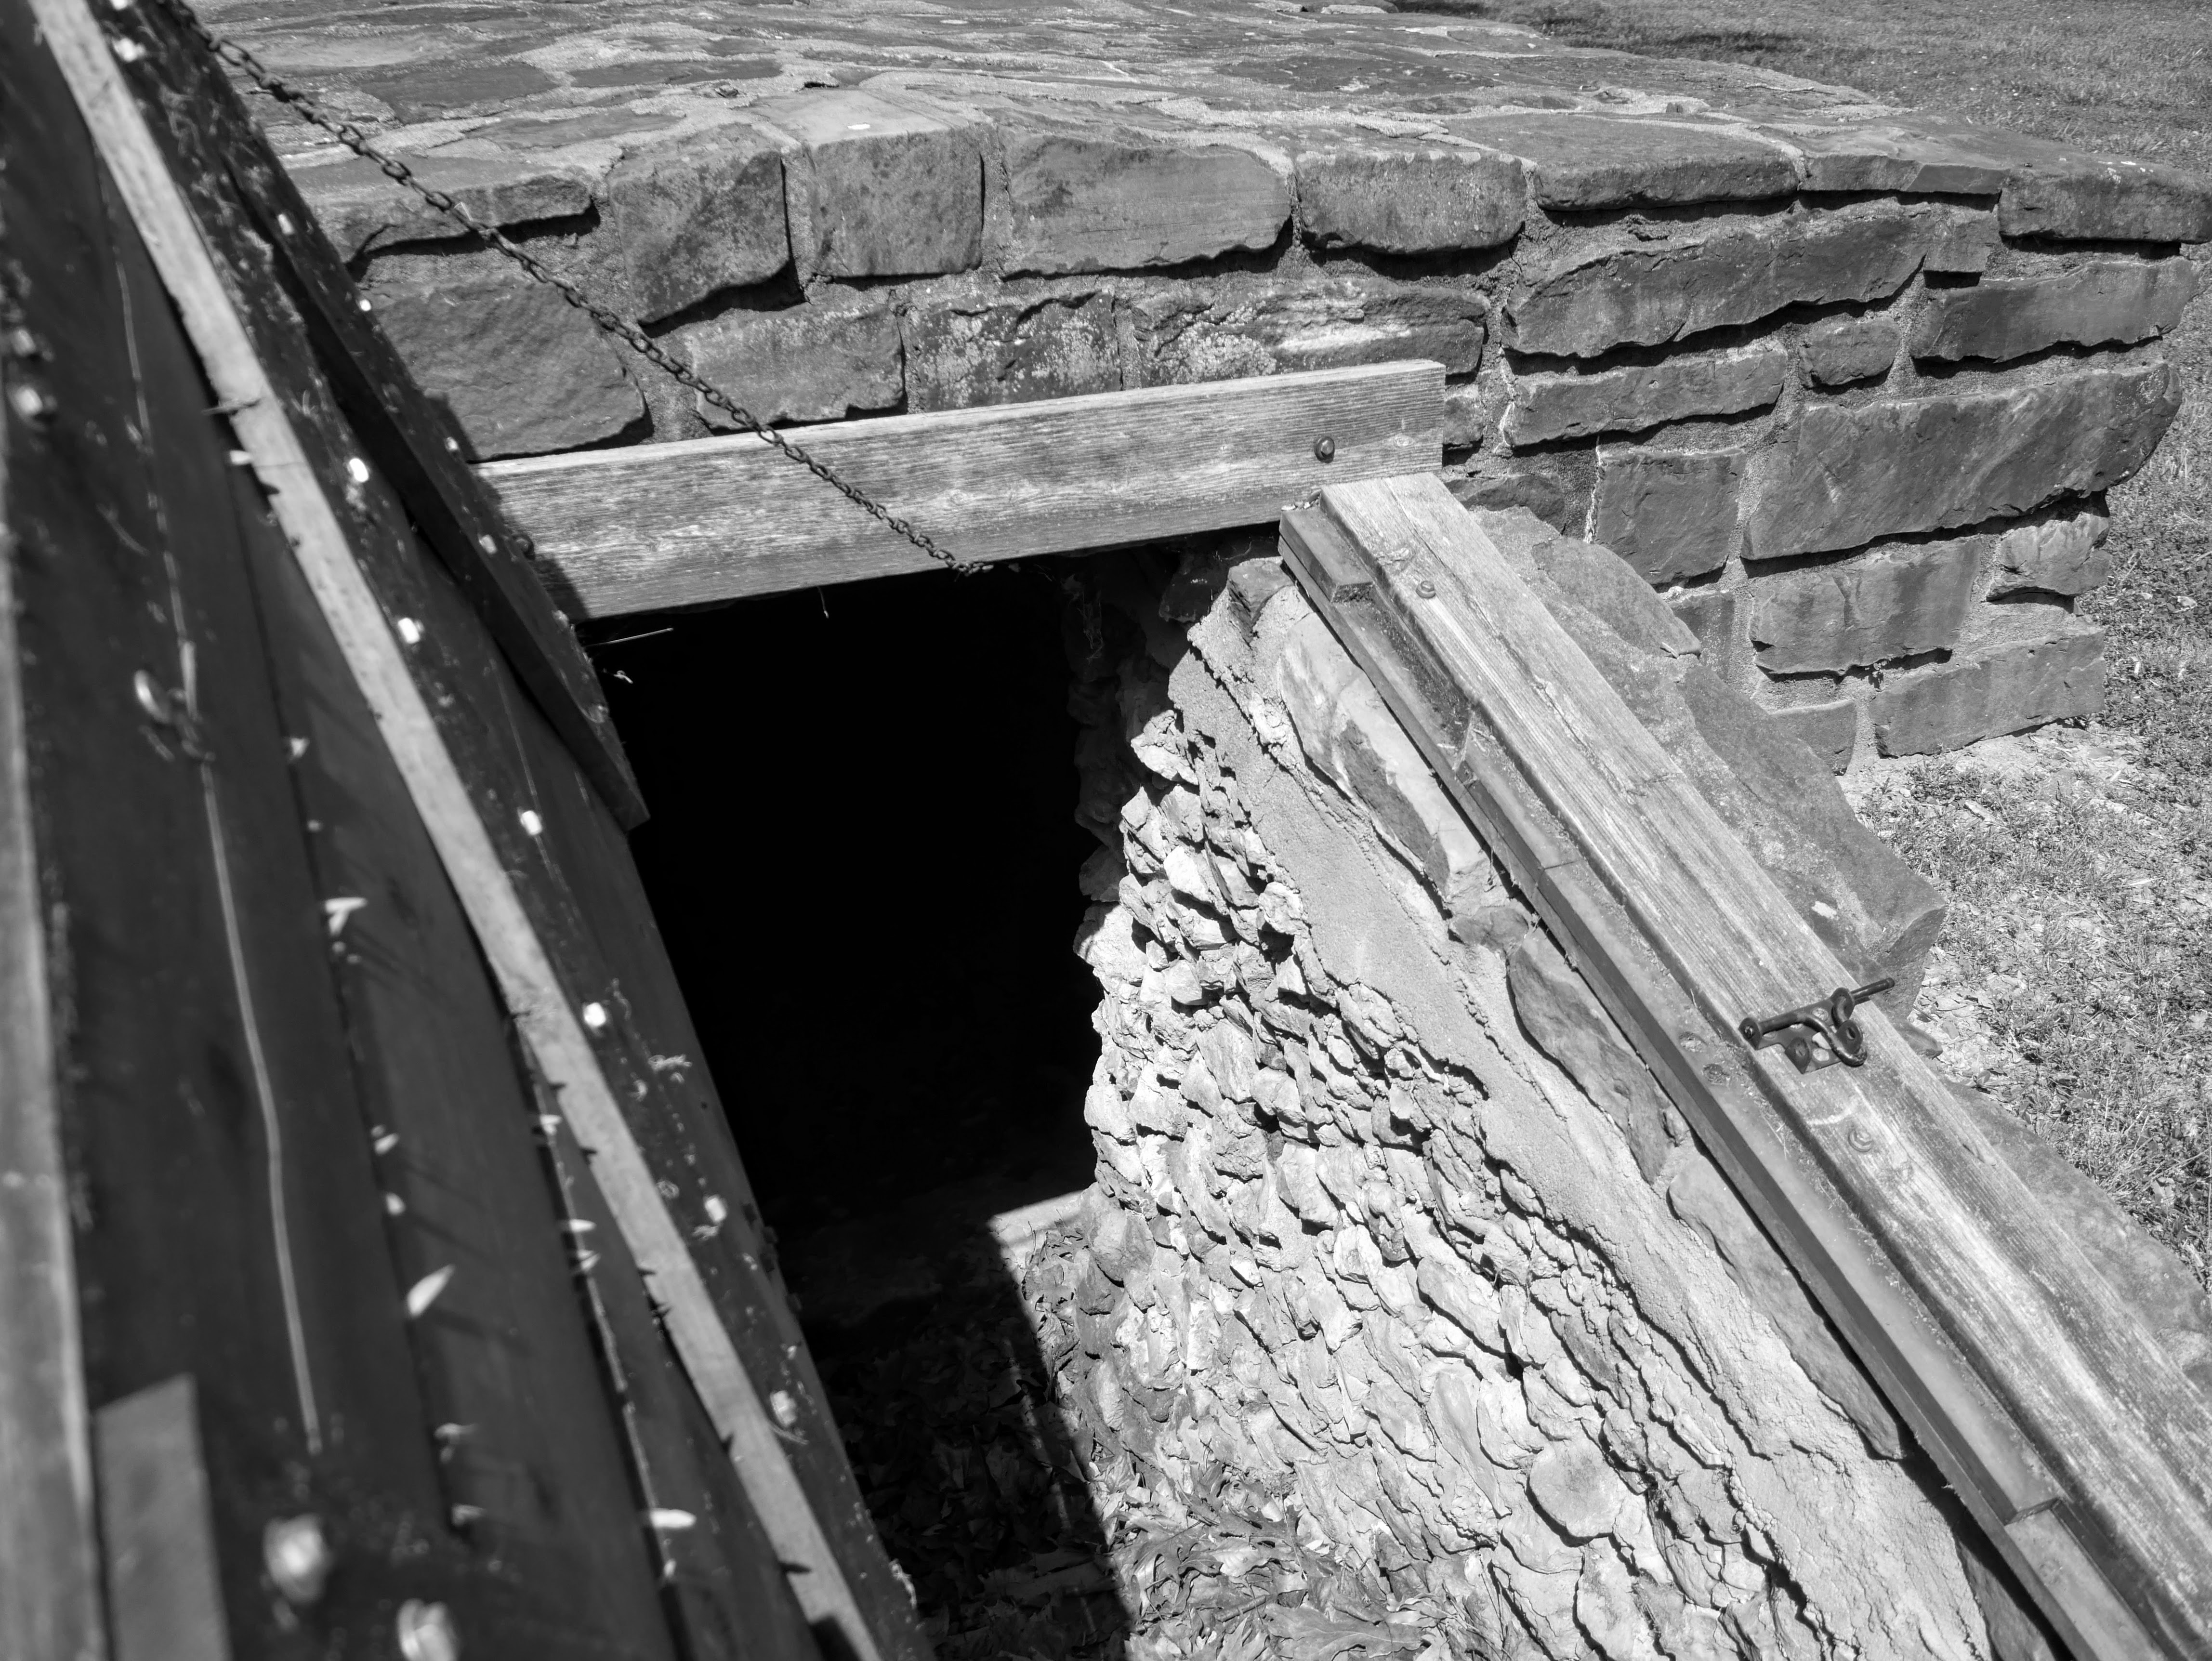 A wooden door opens to a dark stone cellar. The sunlight hits the right wall of the cellar entrance showing that many small stones are stacked to reinforce the walls.